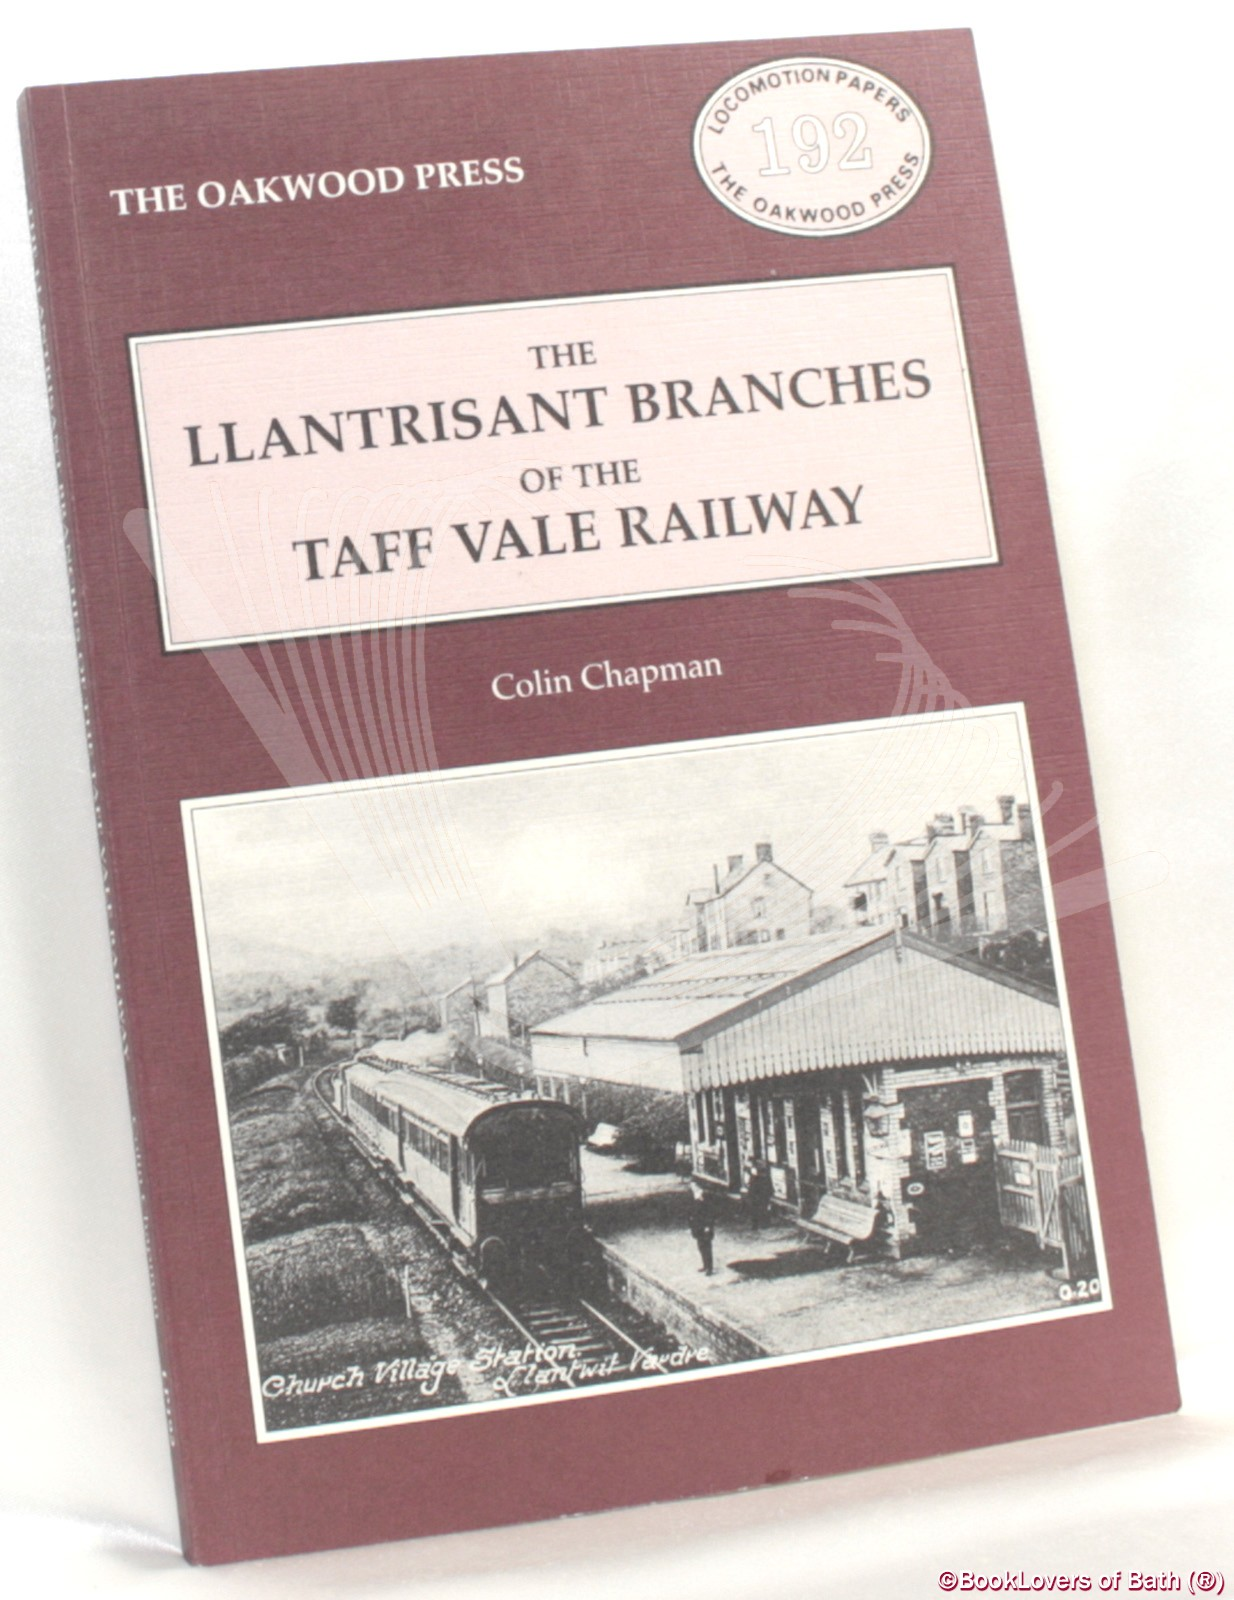 The Llantrisant Branches of the Taff Vale Railway: A History of the Llantrisant and Taff Vale Junction Railway and The Treferig Valley Railway - Colin Chapman